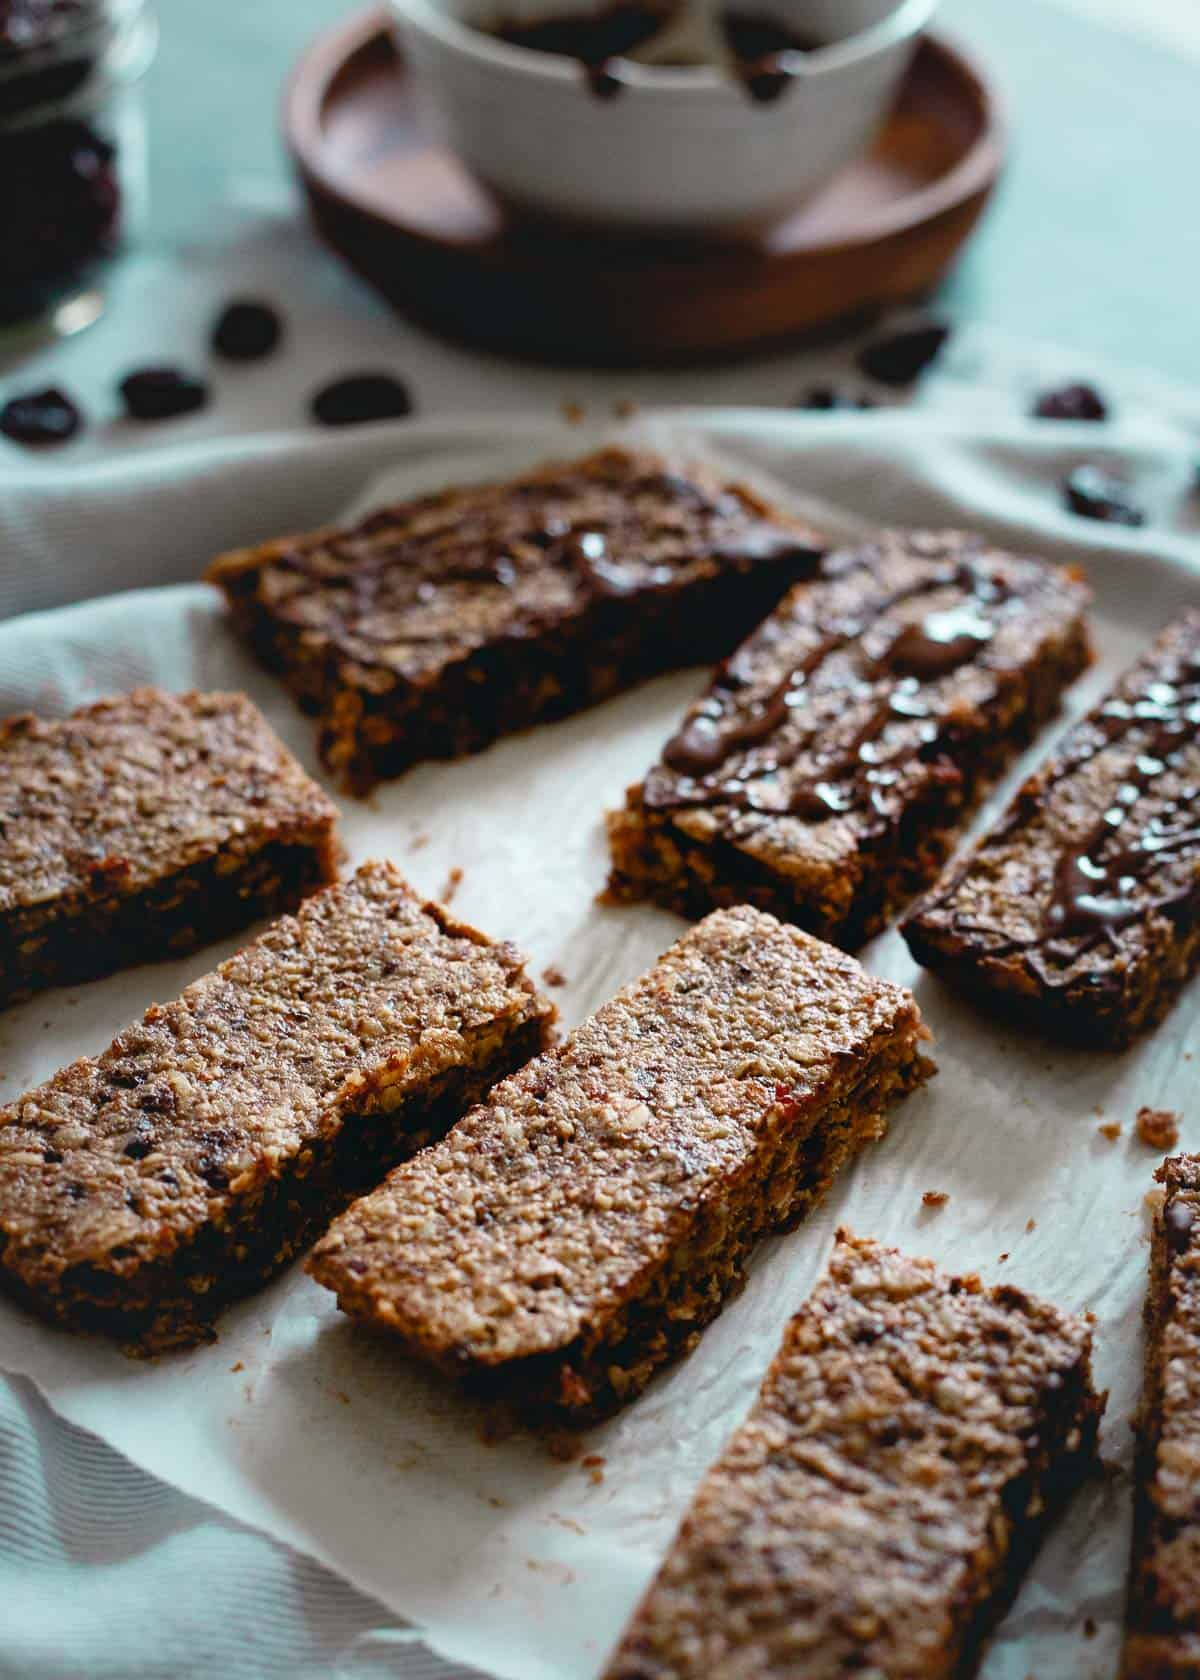 Perfect for eating on the go, these chewy tart cherry oat bars are not only tasty but good for you too!